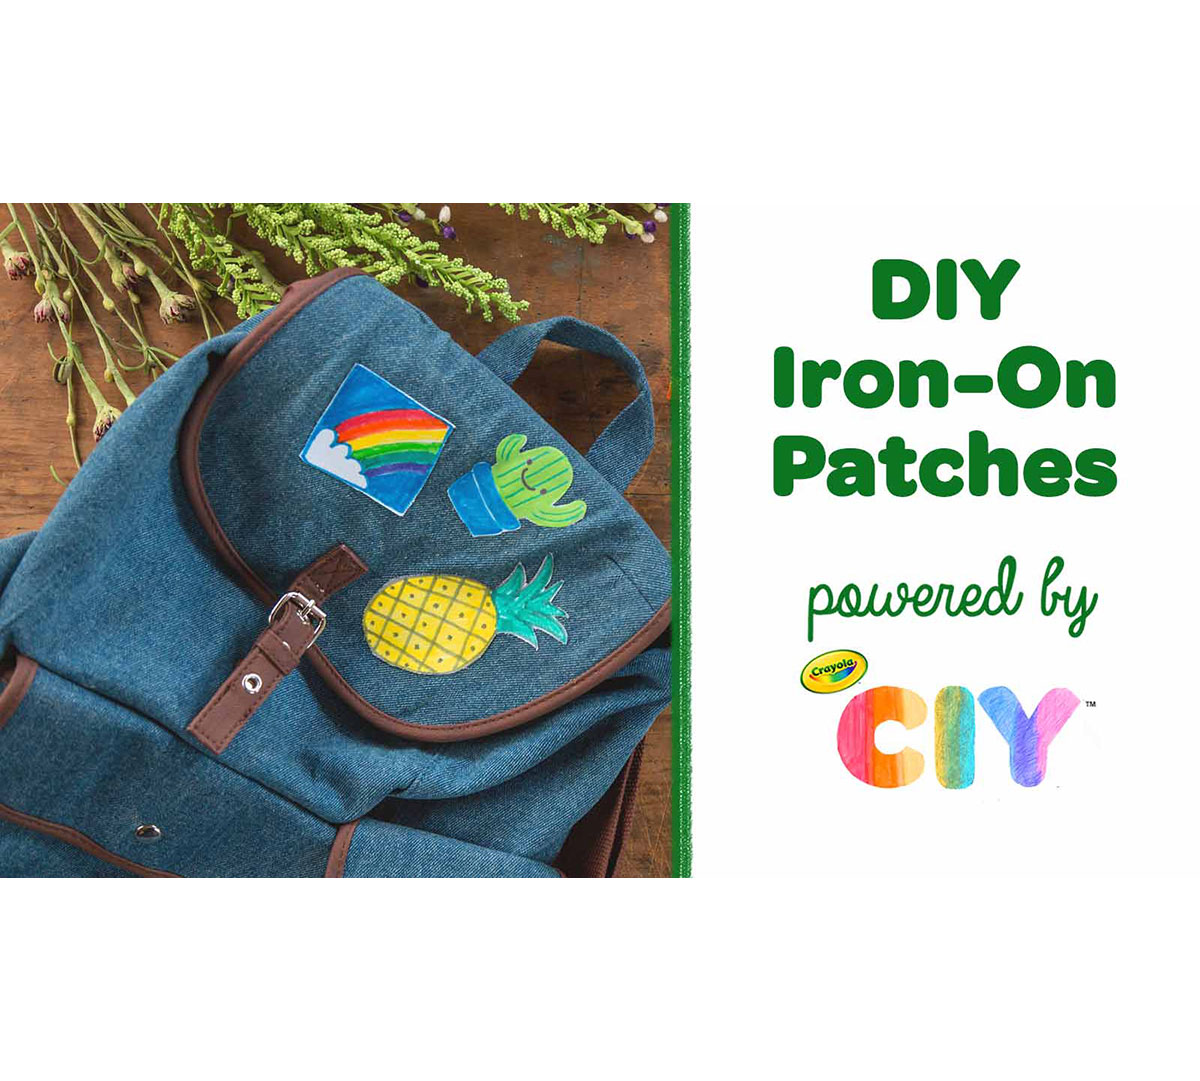 Fabric Patches product listing